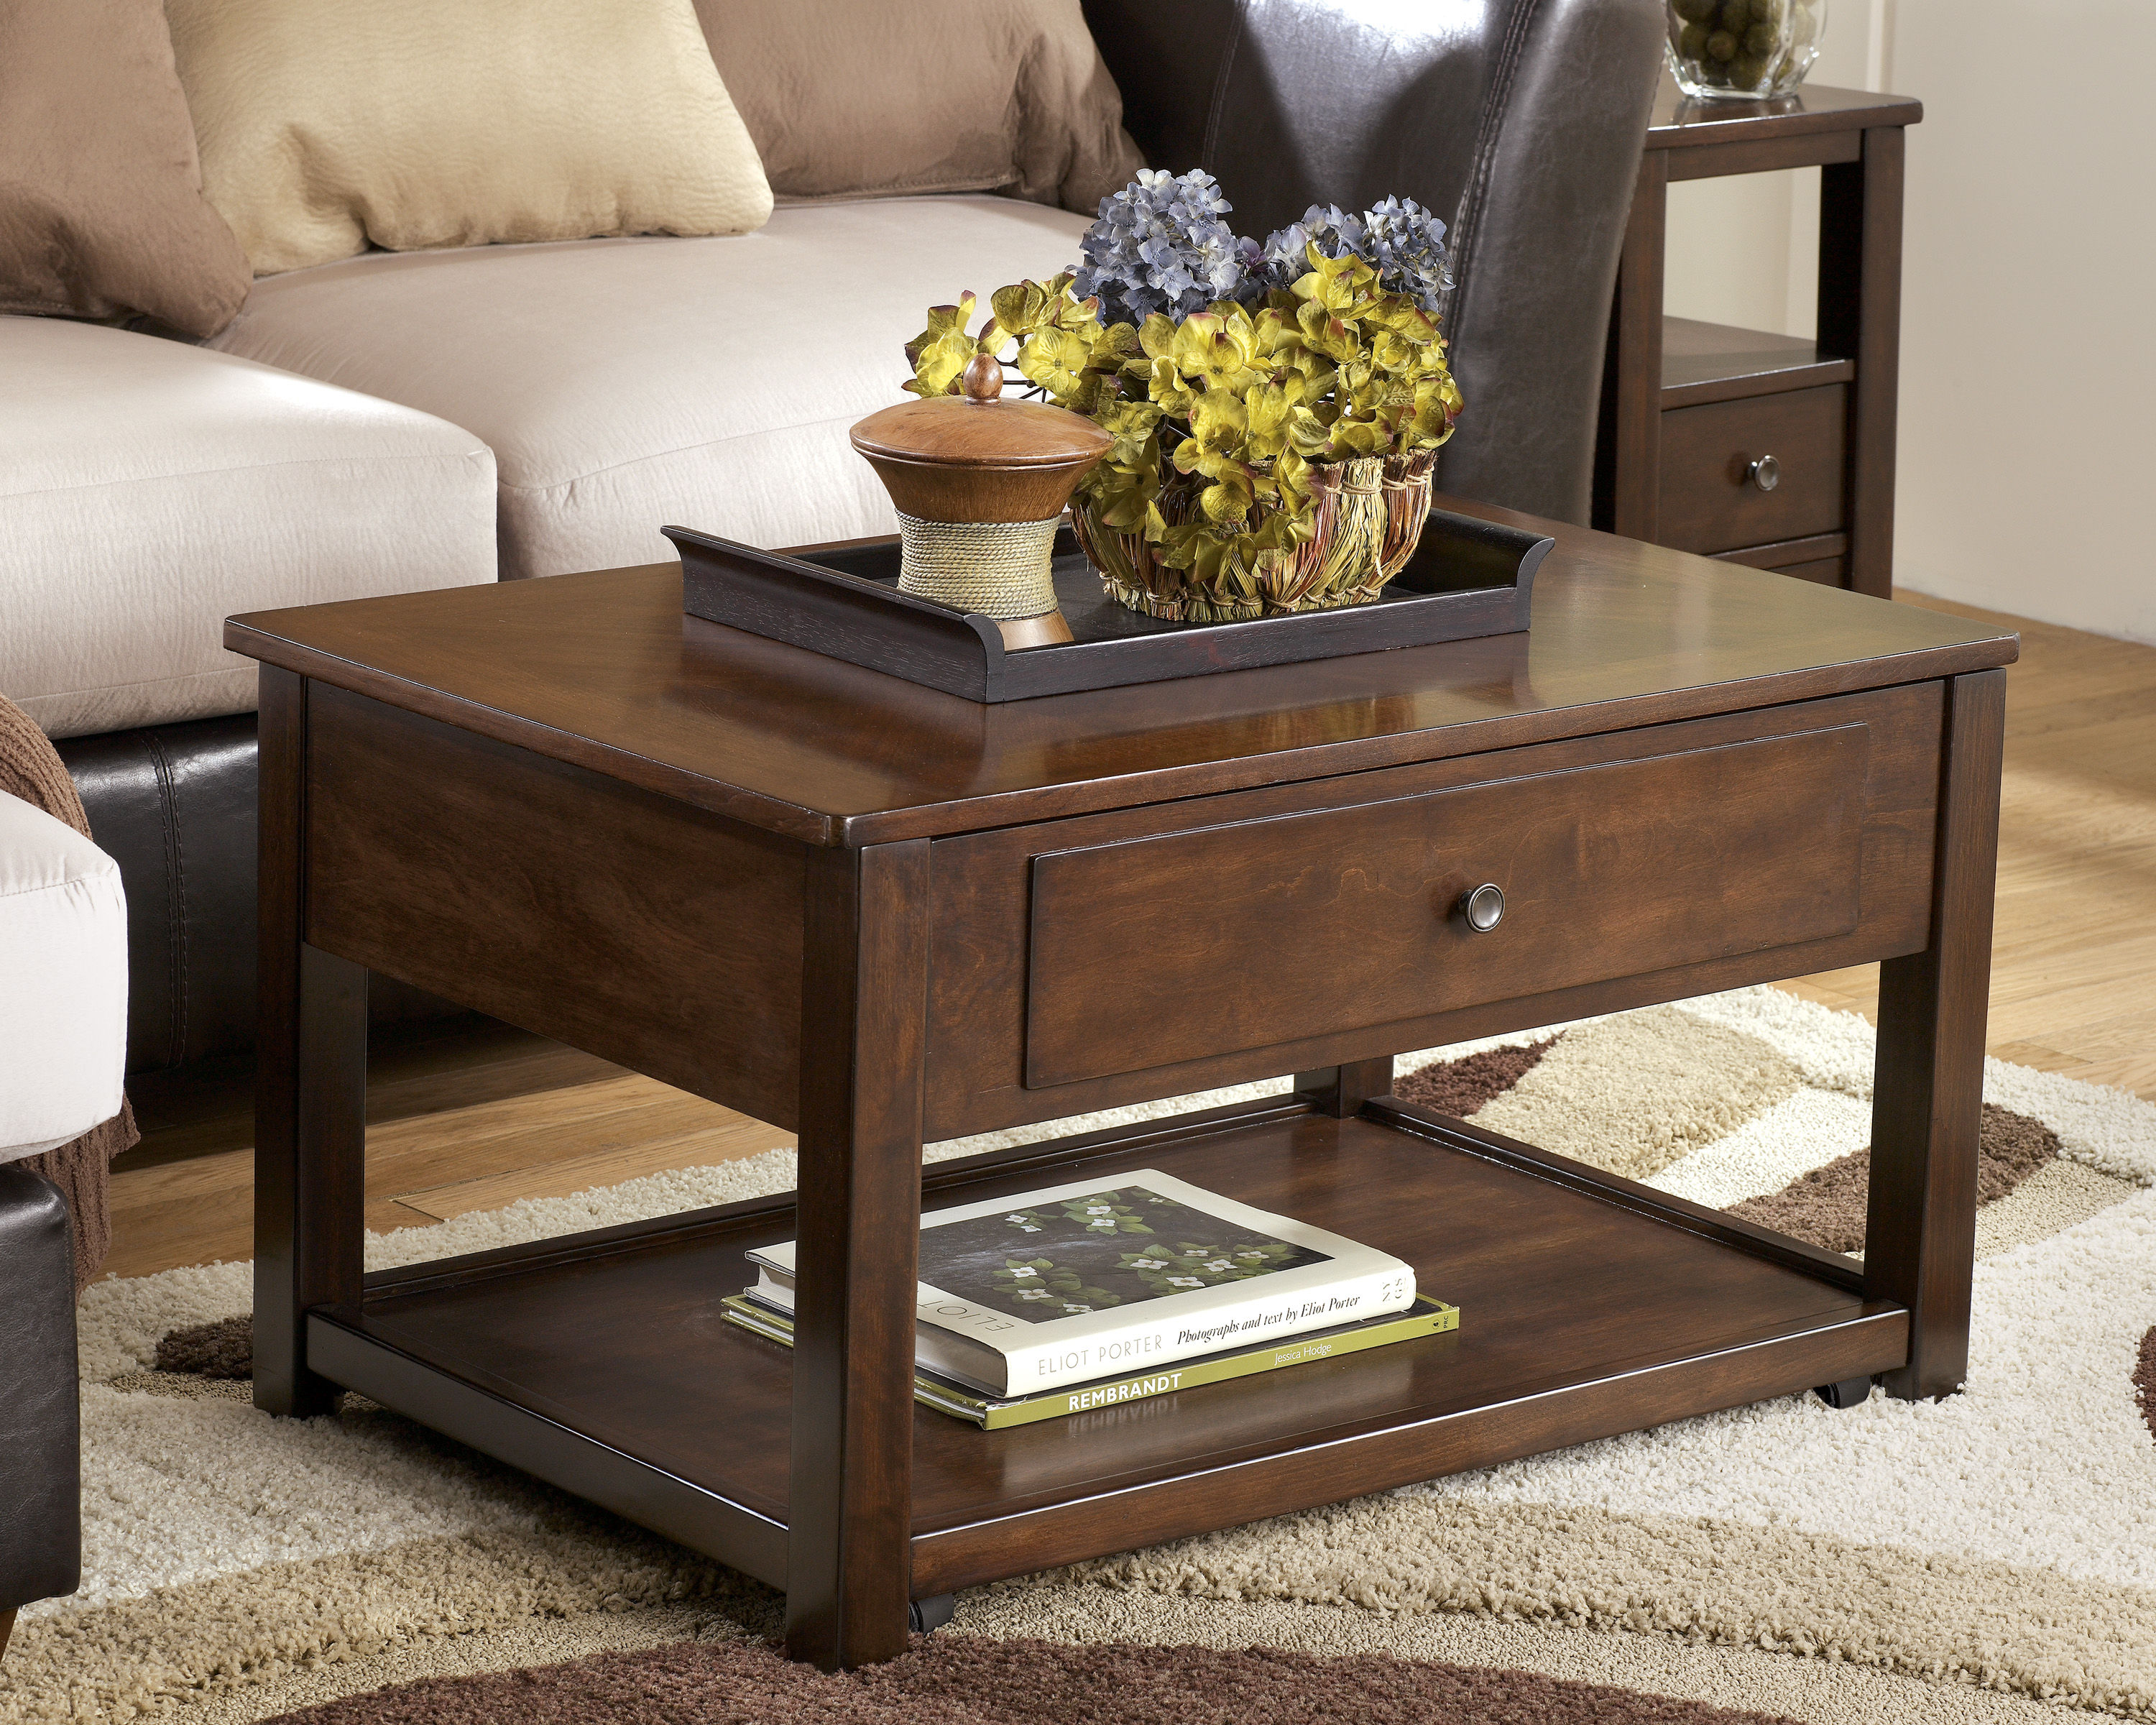 ashley furniture marion dark brown lift top cocktail table the glass end tables click enlarge round center for living room mainstays company website selfless catalogue decorative